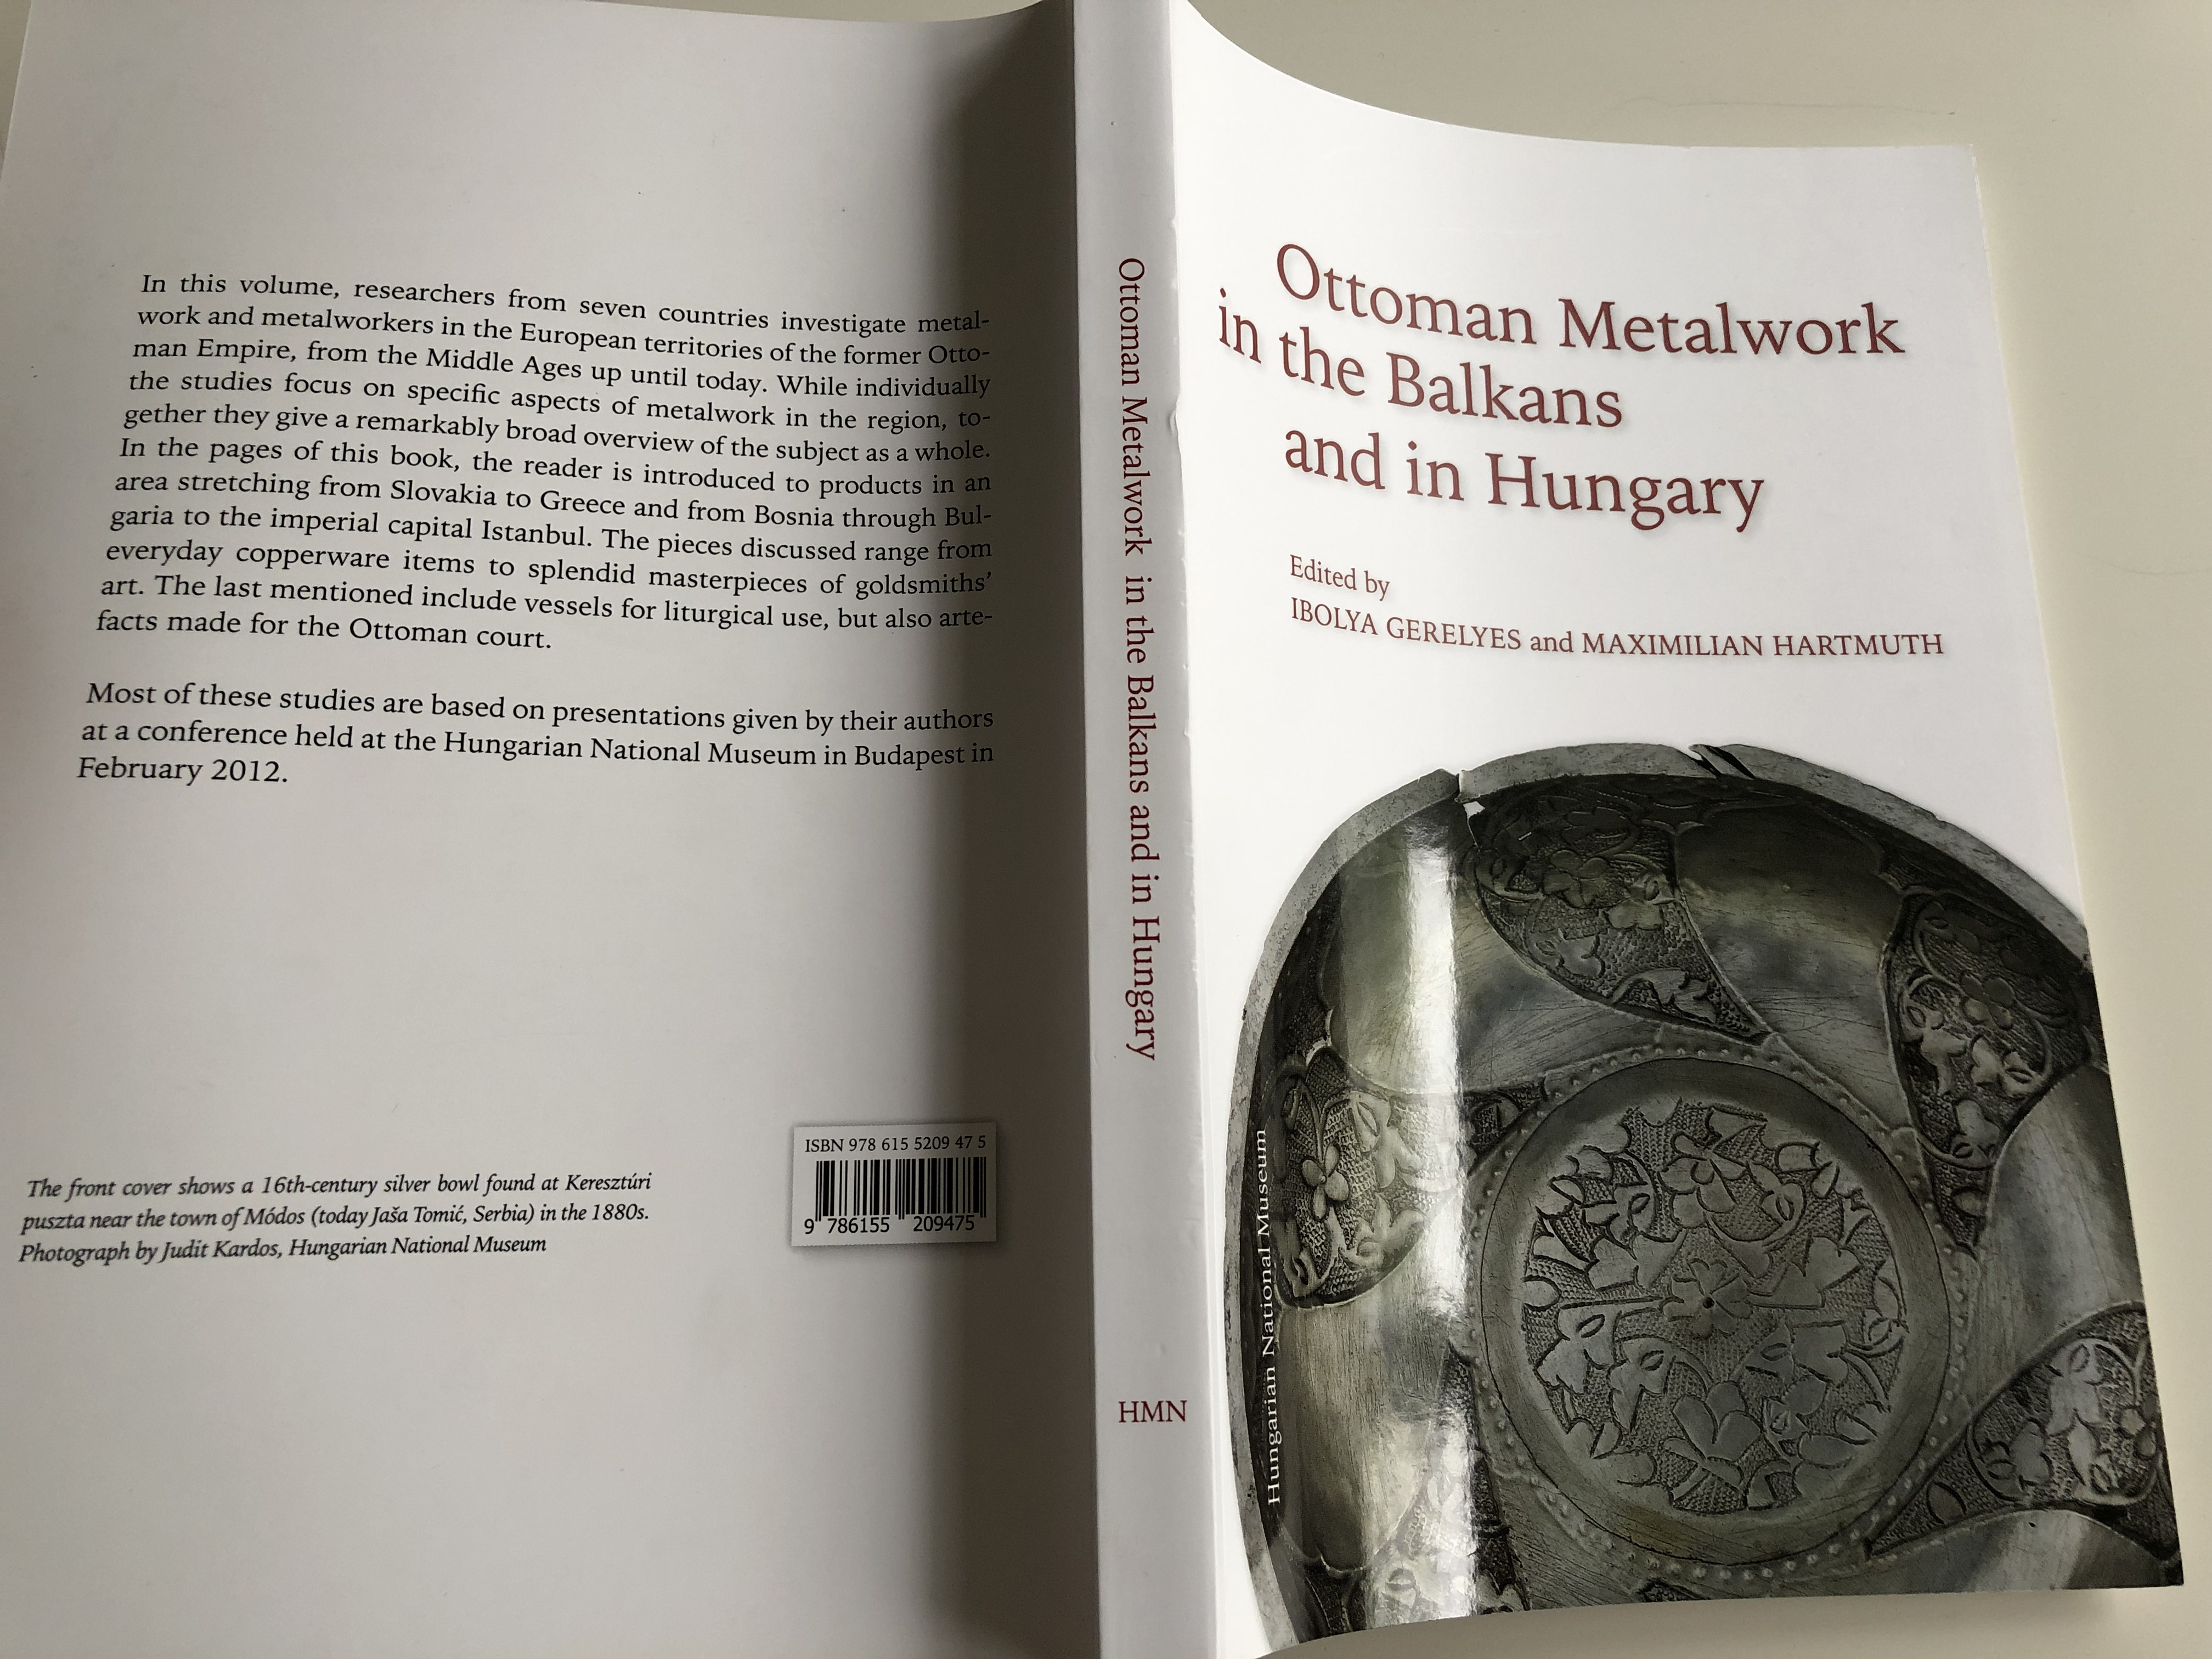 ottoman-metalwork-in-the-balkans-and-in-hungary-by-ibolya-gerelyes-and-maximilian-hartmuth-hungarian-national-museum-paperback-2015-18-.jpg